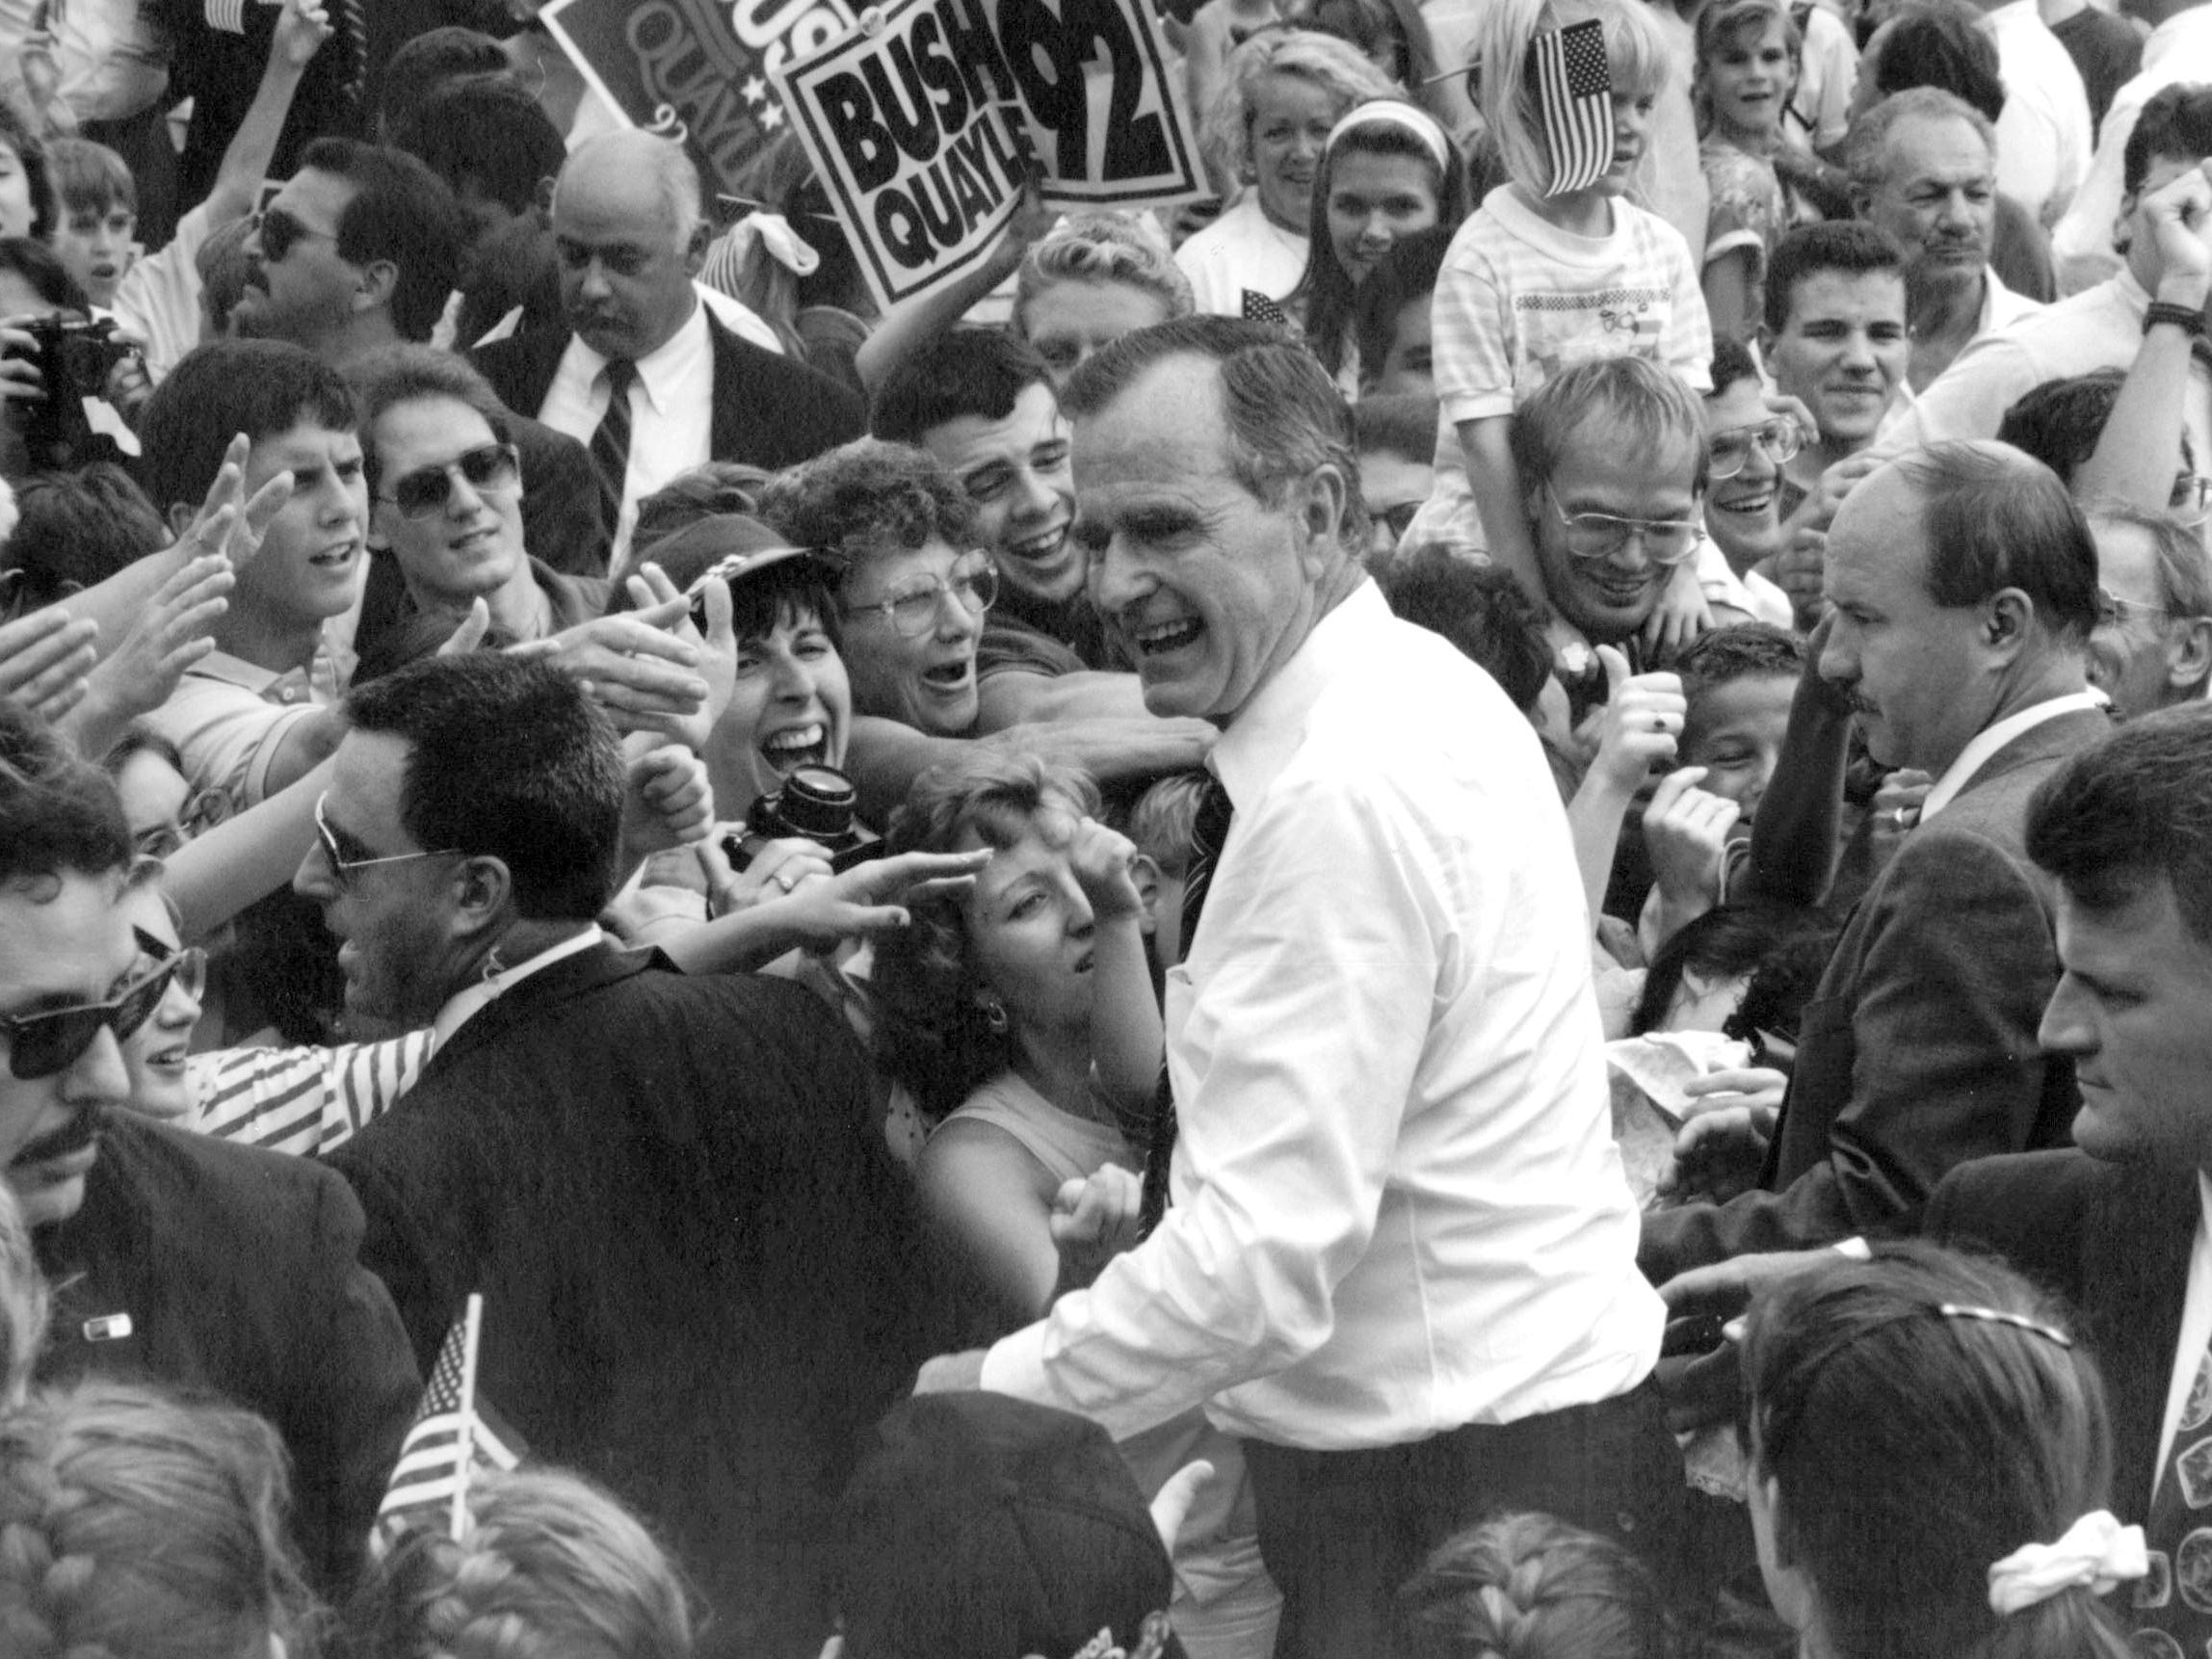 President George Bush greets well-wishers after addressing about 5,000 at Heritage Park in Canton Township in August 1992.